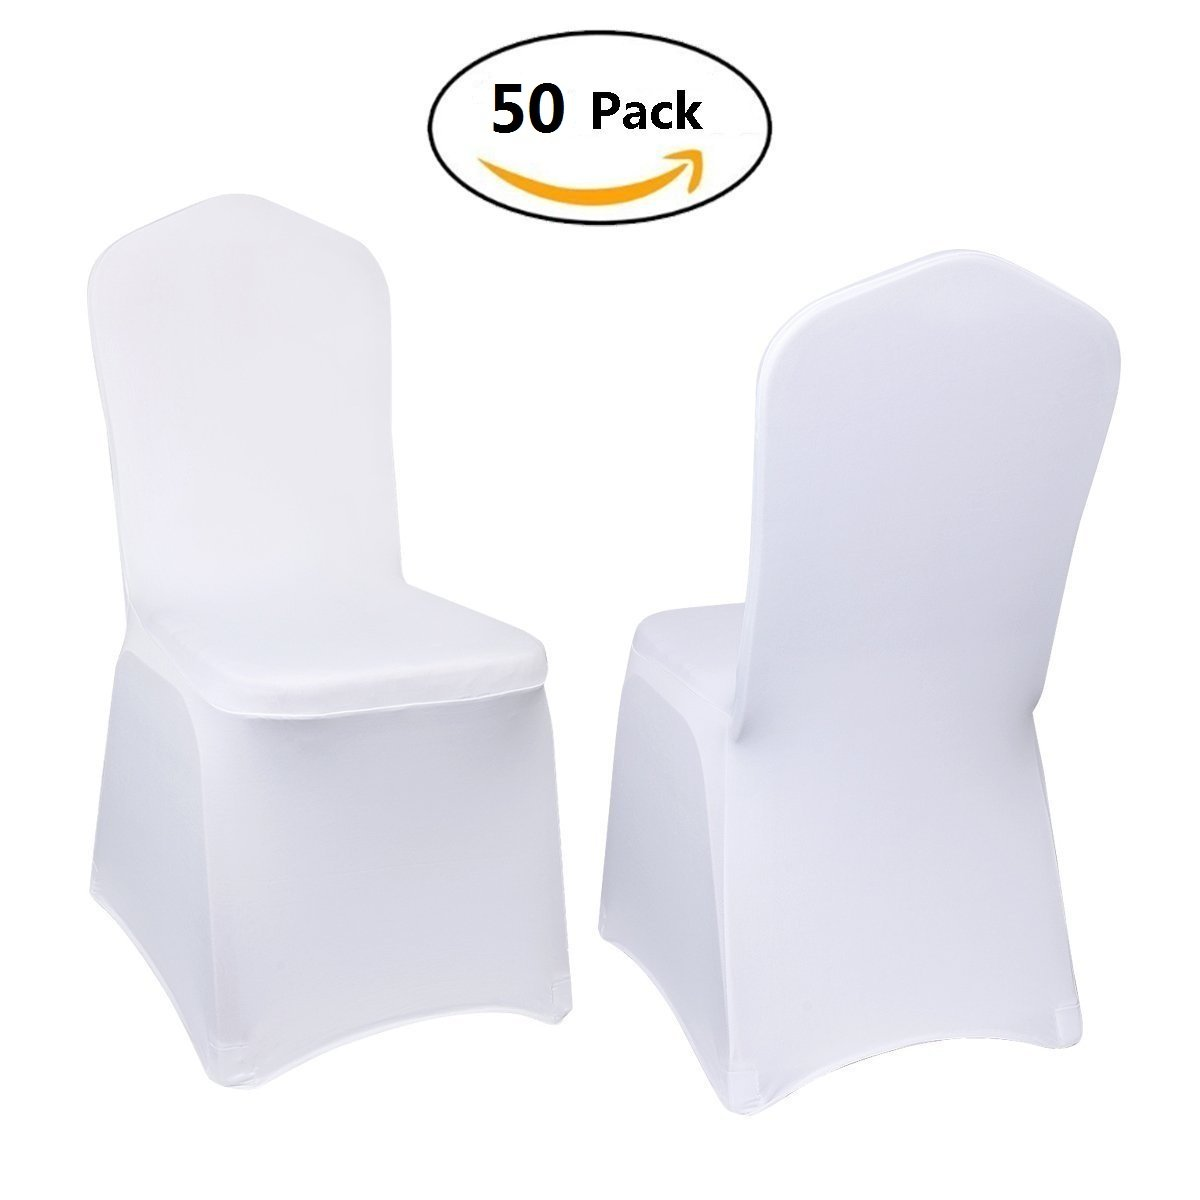 Stretch Polyester Spandex Dining Chair Cover Including 4 x Elasticated & Rugged Pockets for Wedding or Party Use by Yoshioe